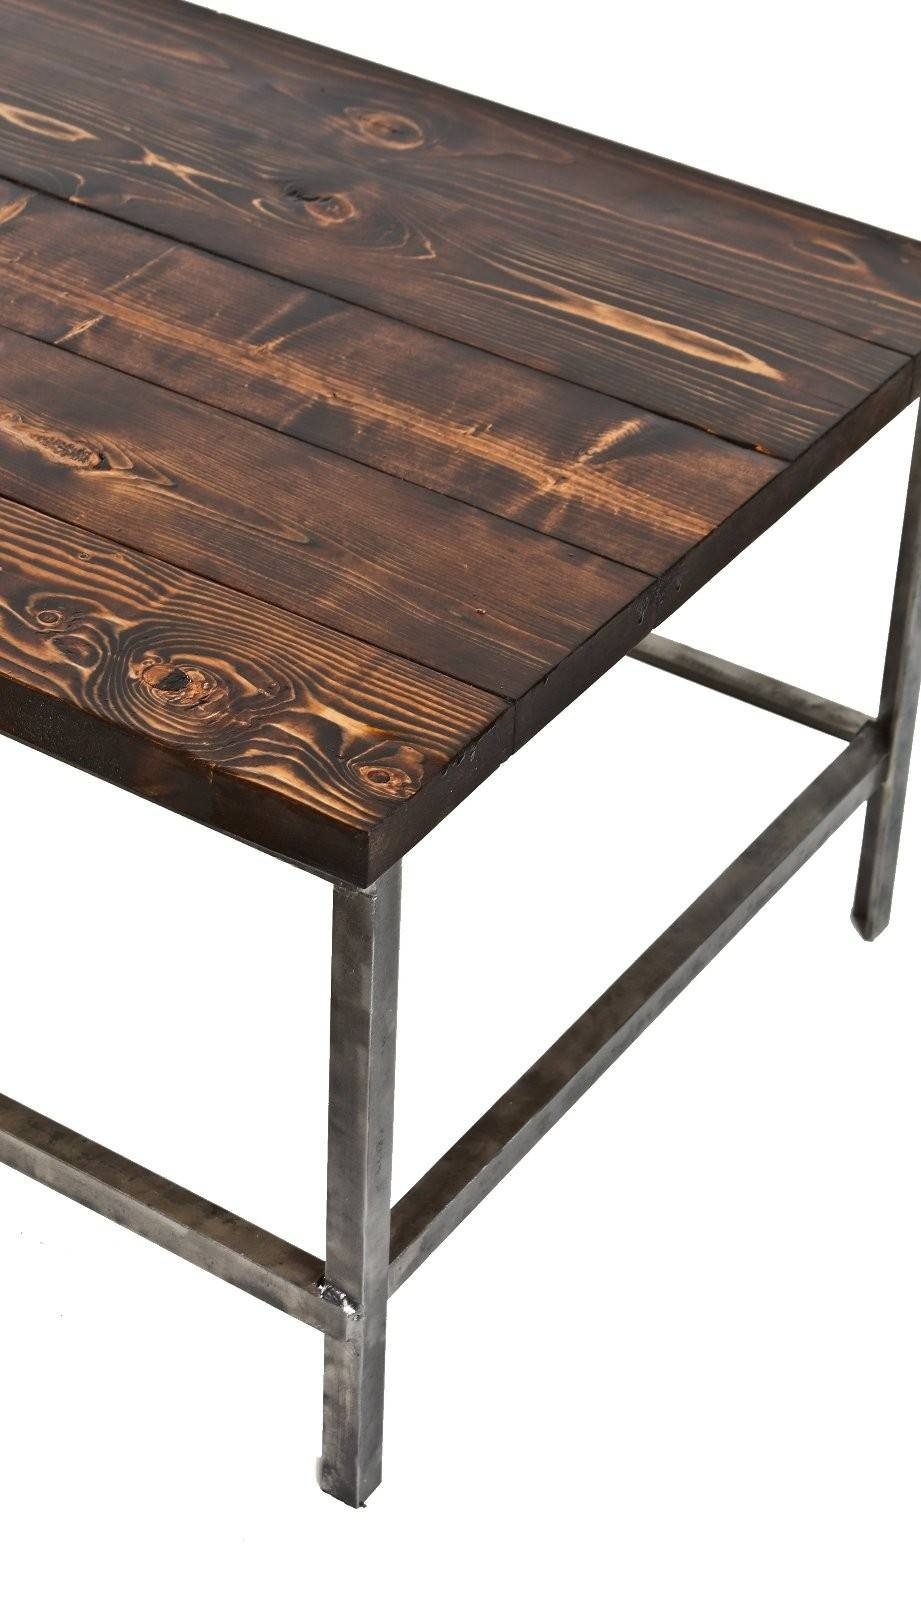 Long And Narrow C. 1940's Repurposed American Industrial Brushed throughout Wood and Steel Coffee Table (Image 10 of 15)